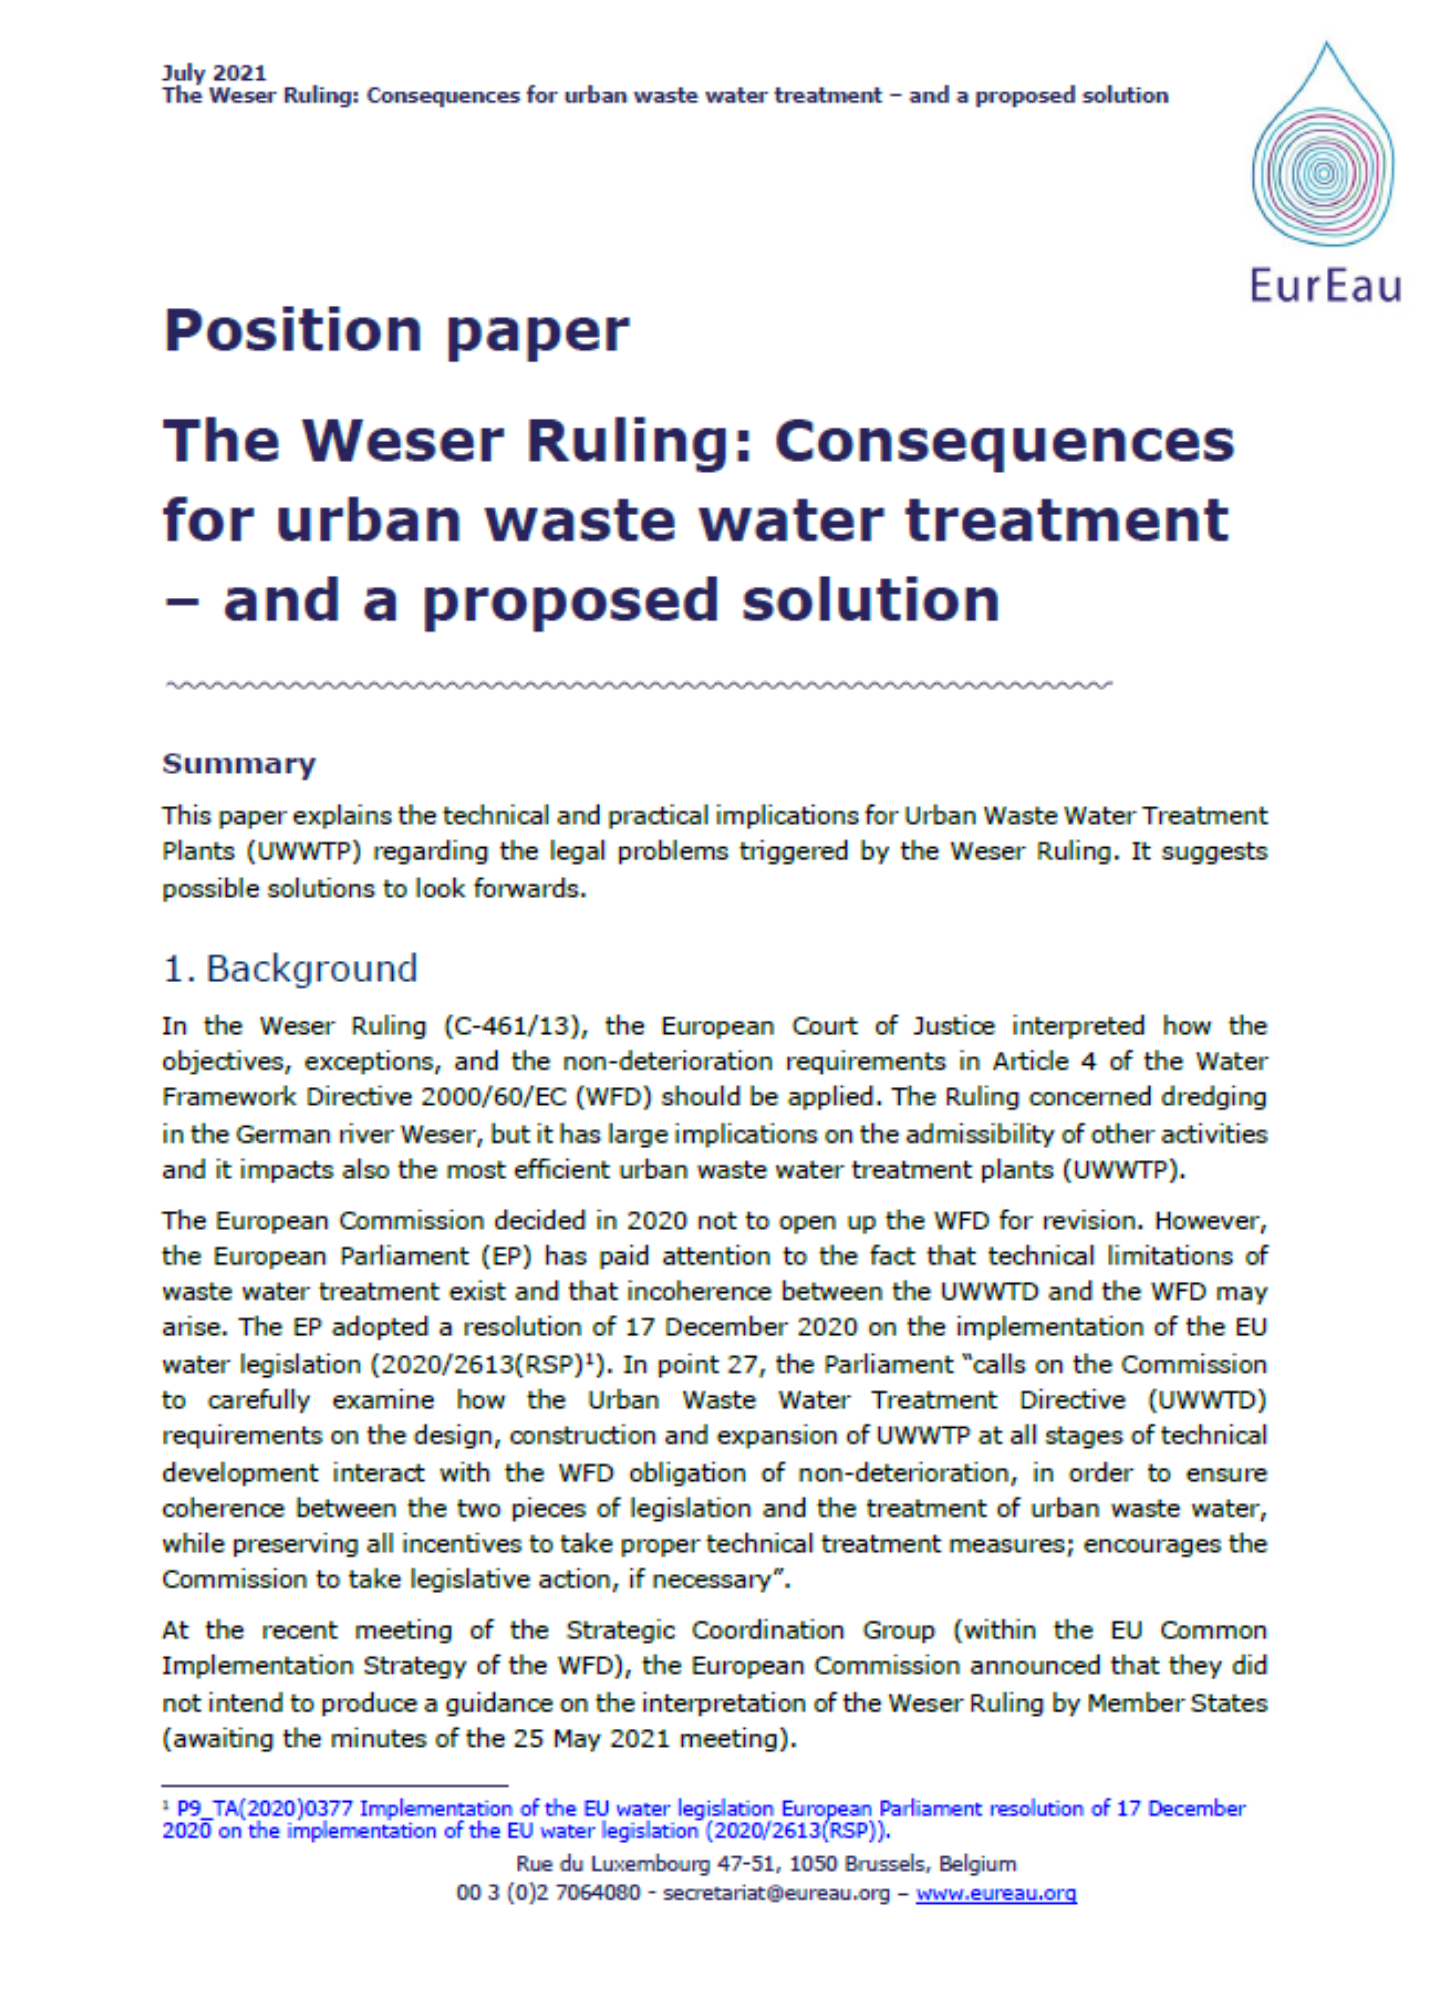 Position paper on the Weser Ruling and its effects on UWWTP